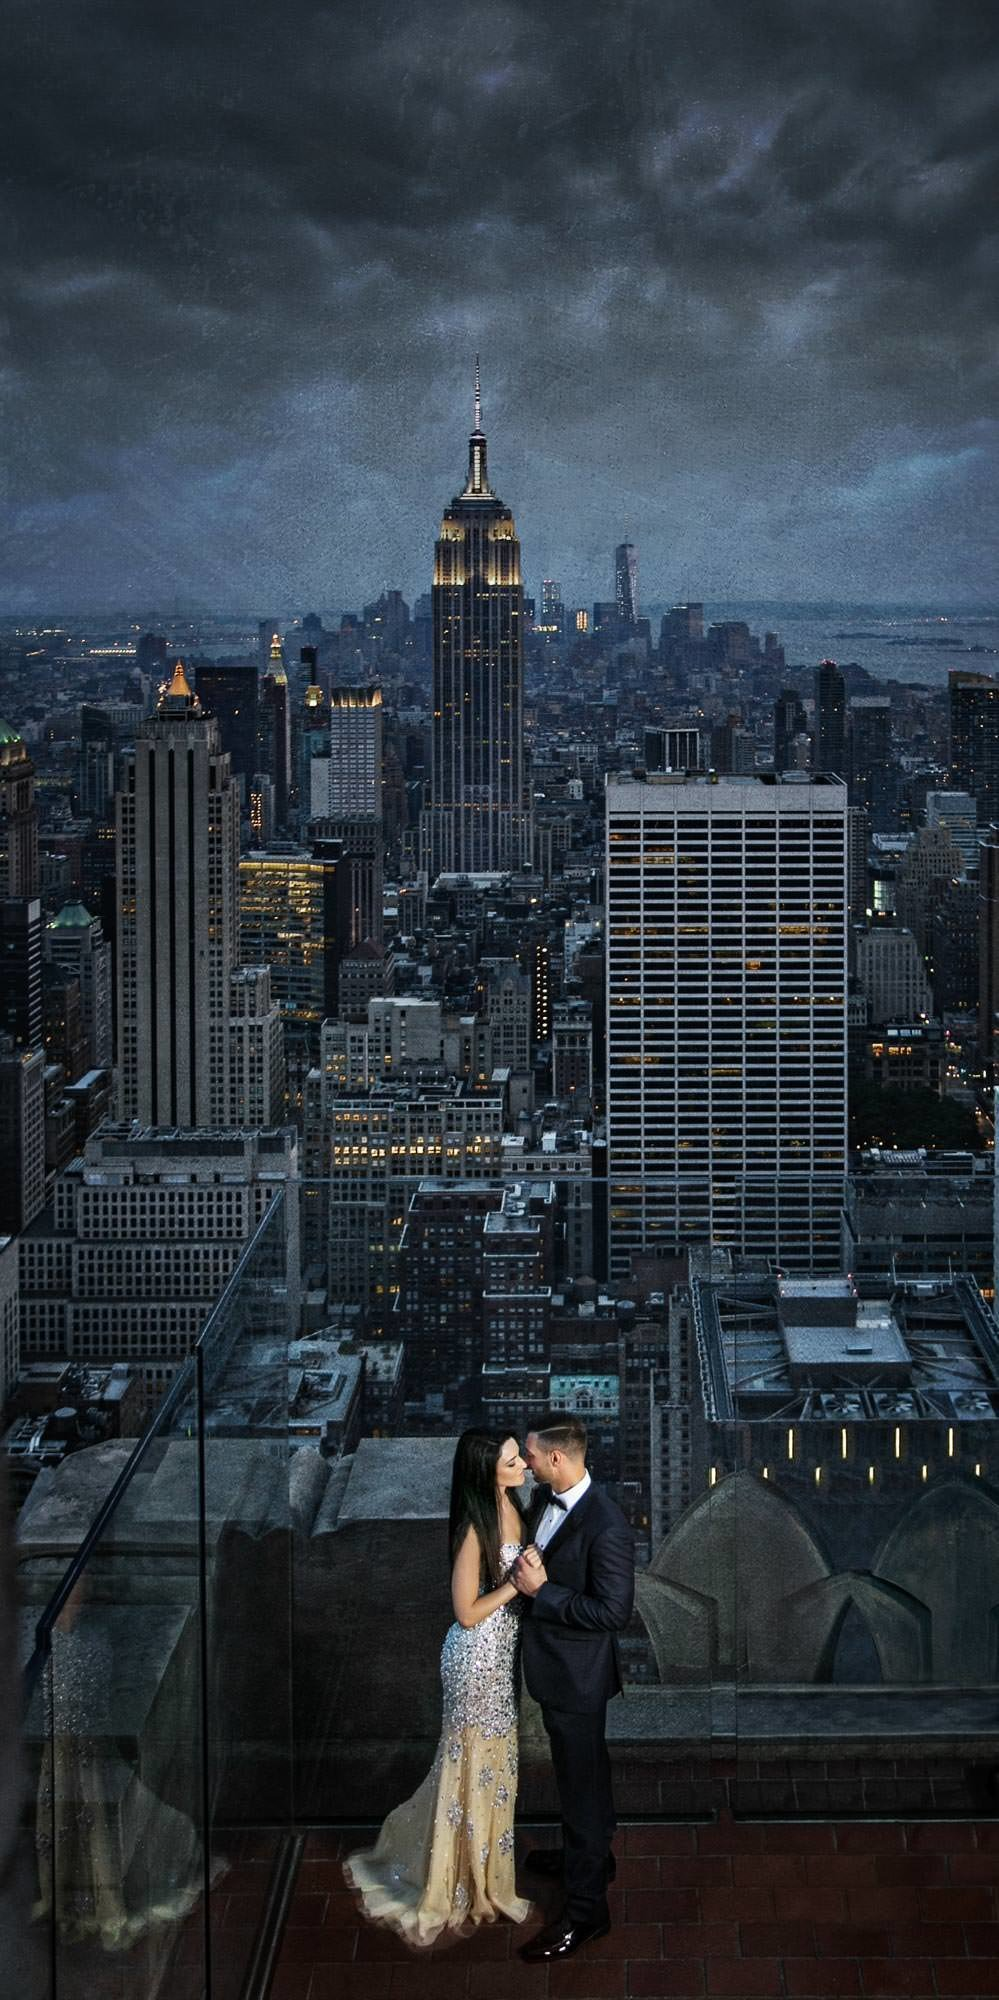 NJ Wedding Photographer Michael Romeo Creations Fav - 20150712 - MRC Signature - Top Of The Rock-2